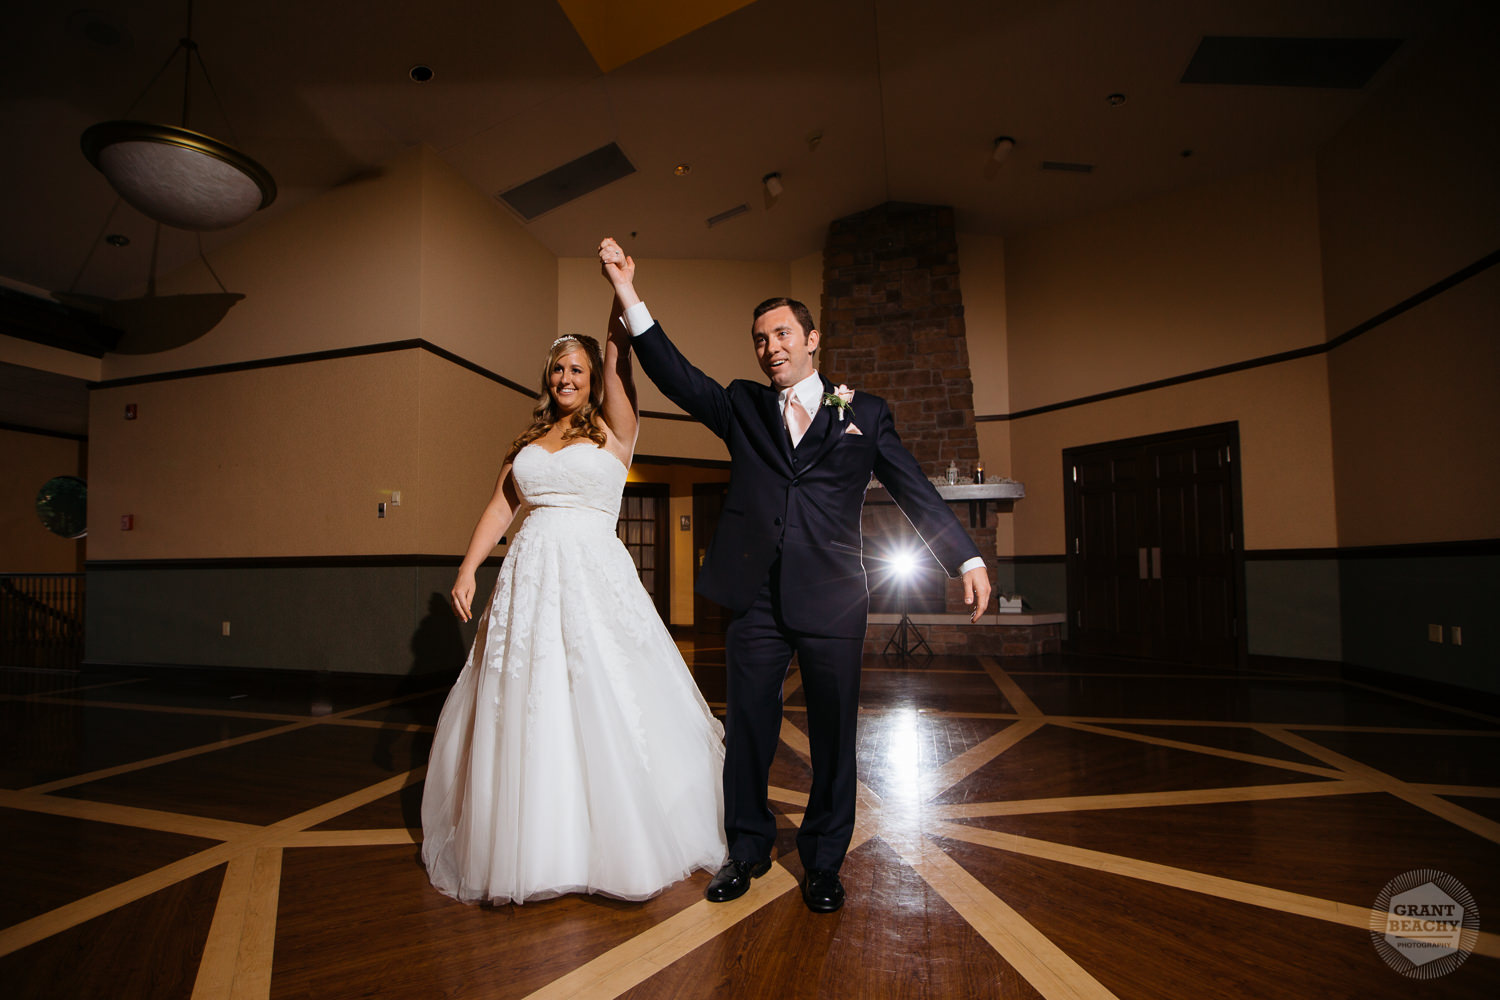 Grant Beachy wedding photography southbend goshen chicago-43.jpg